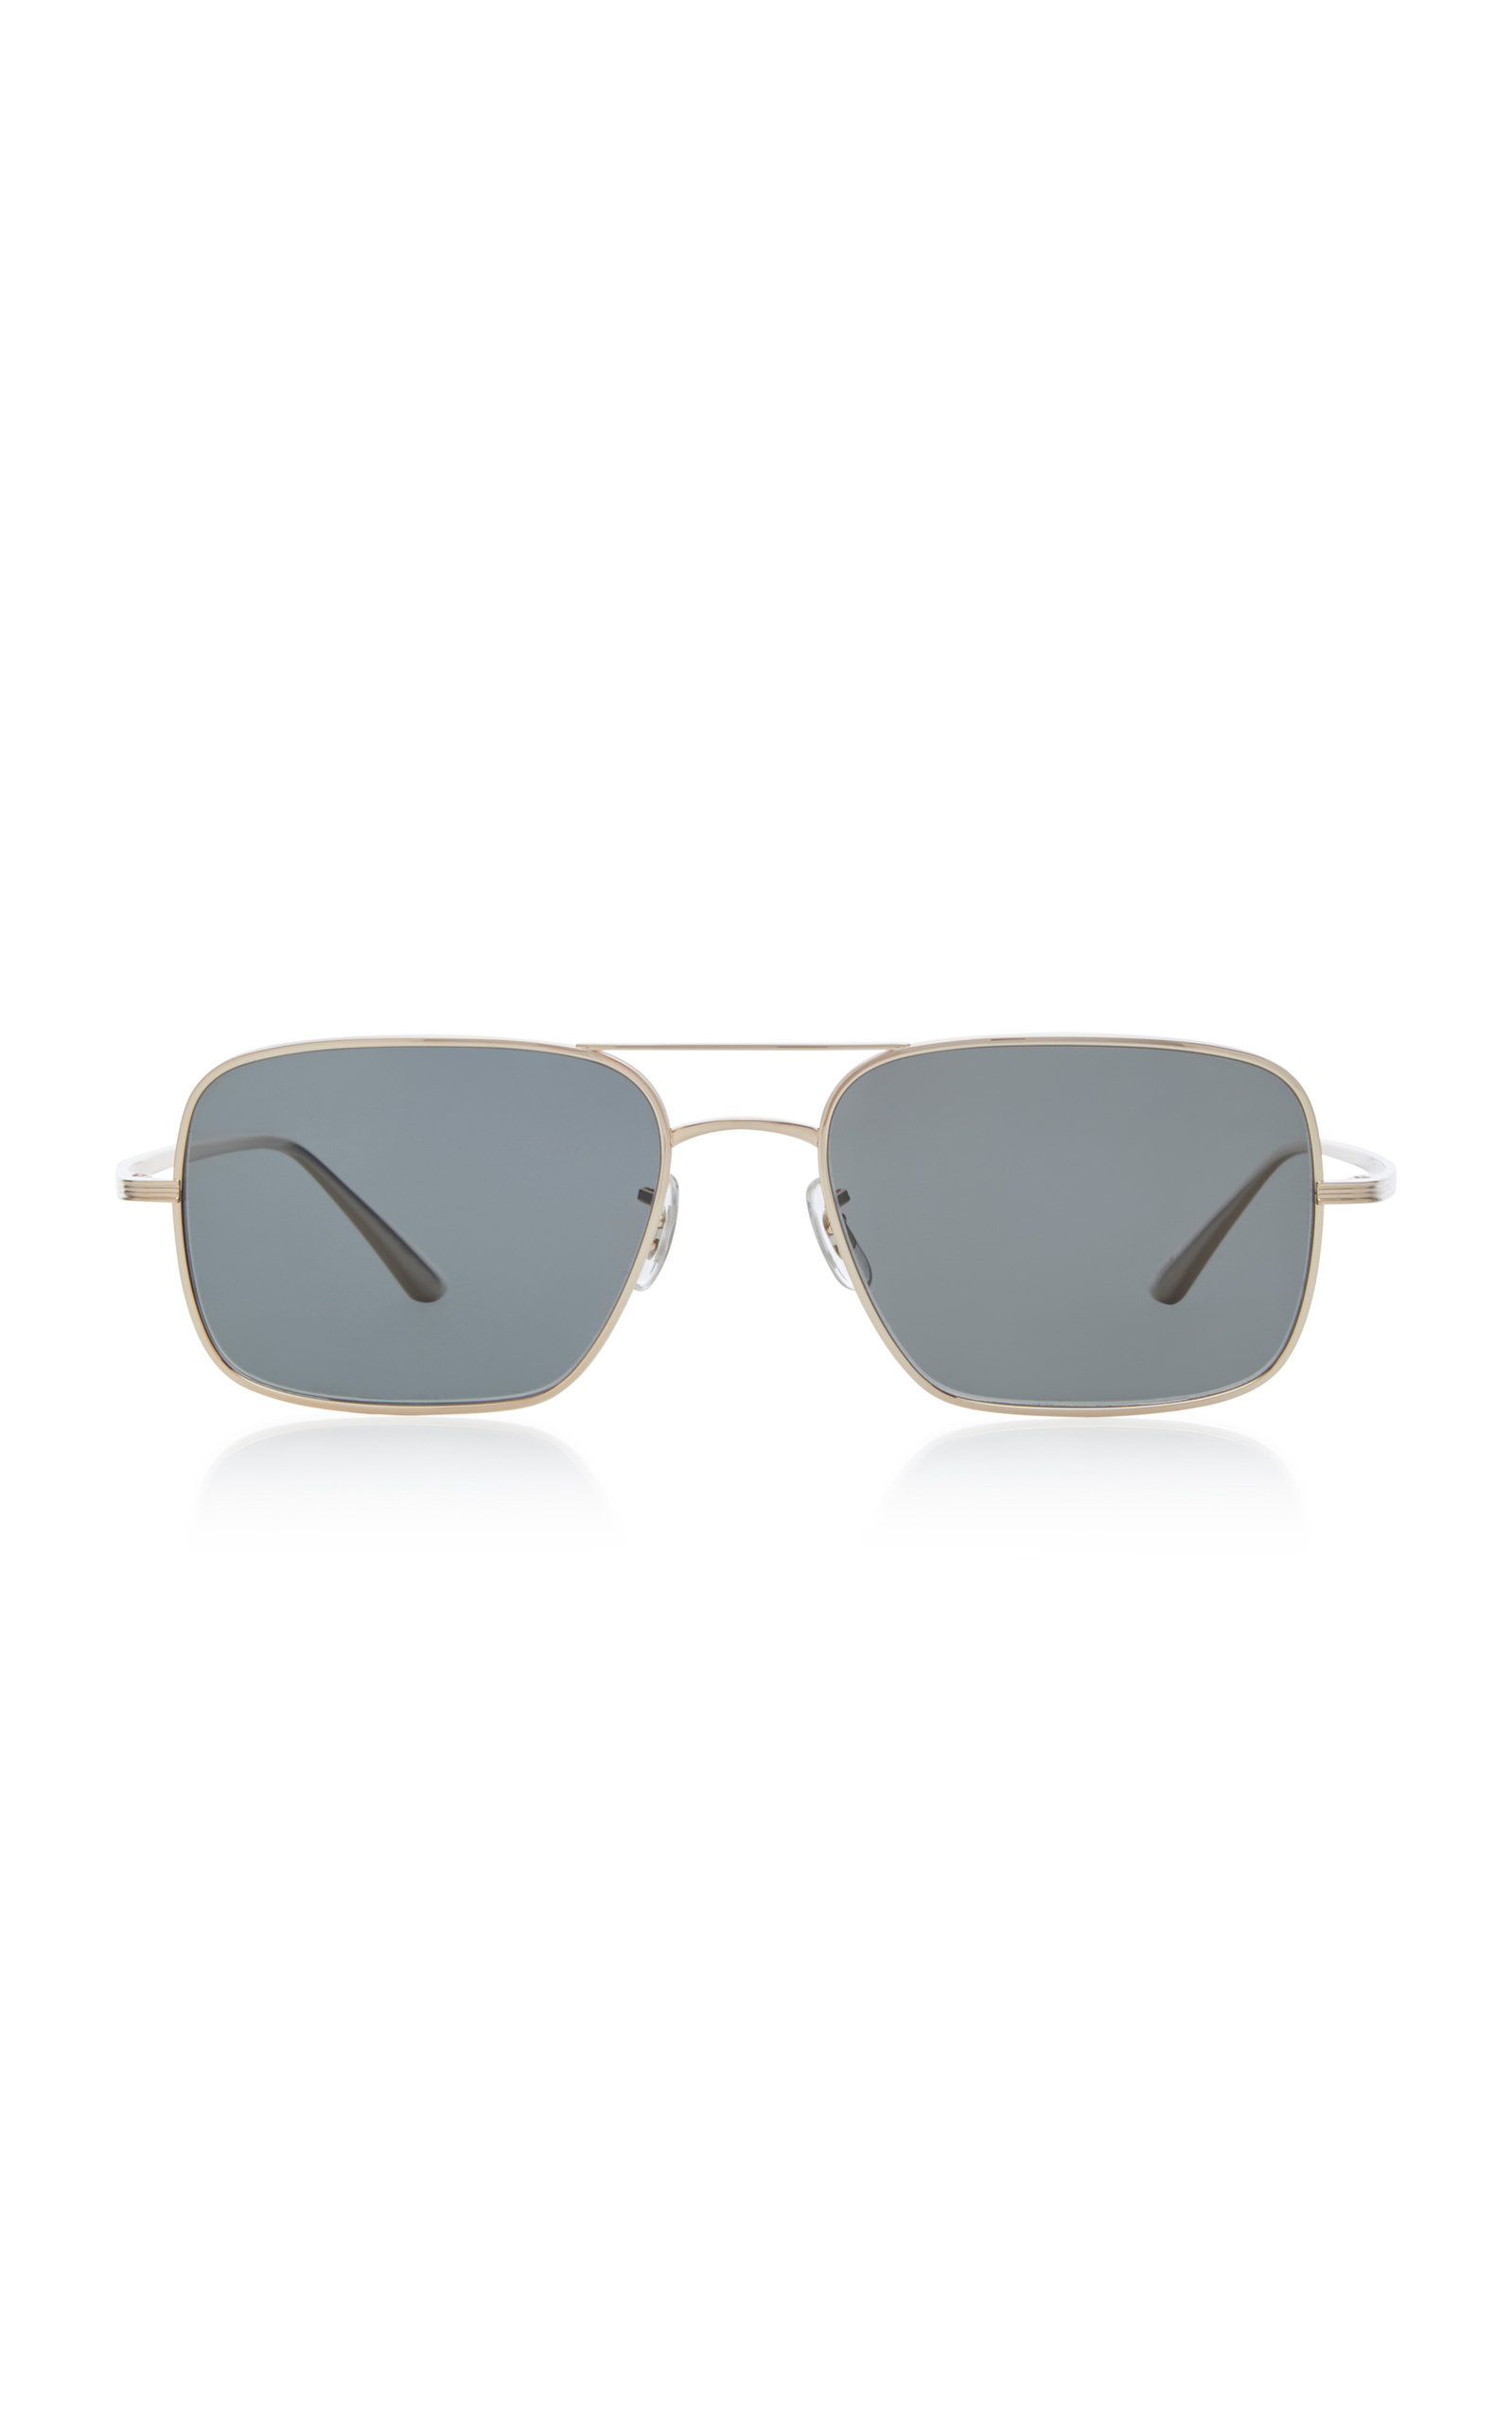 2a71f9bd671 Oliver Peoples THE ROWVictory LA Square Sunglasses. CLOSE. Loading